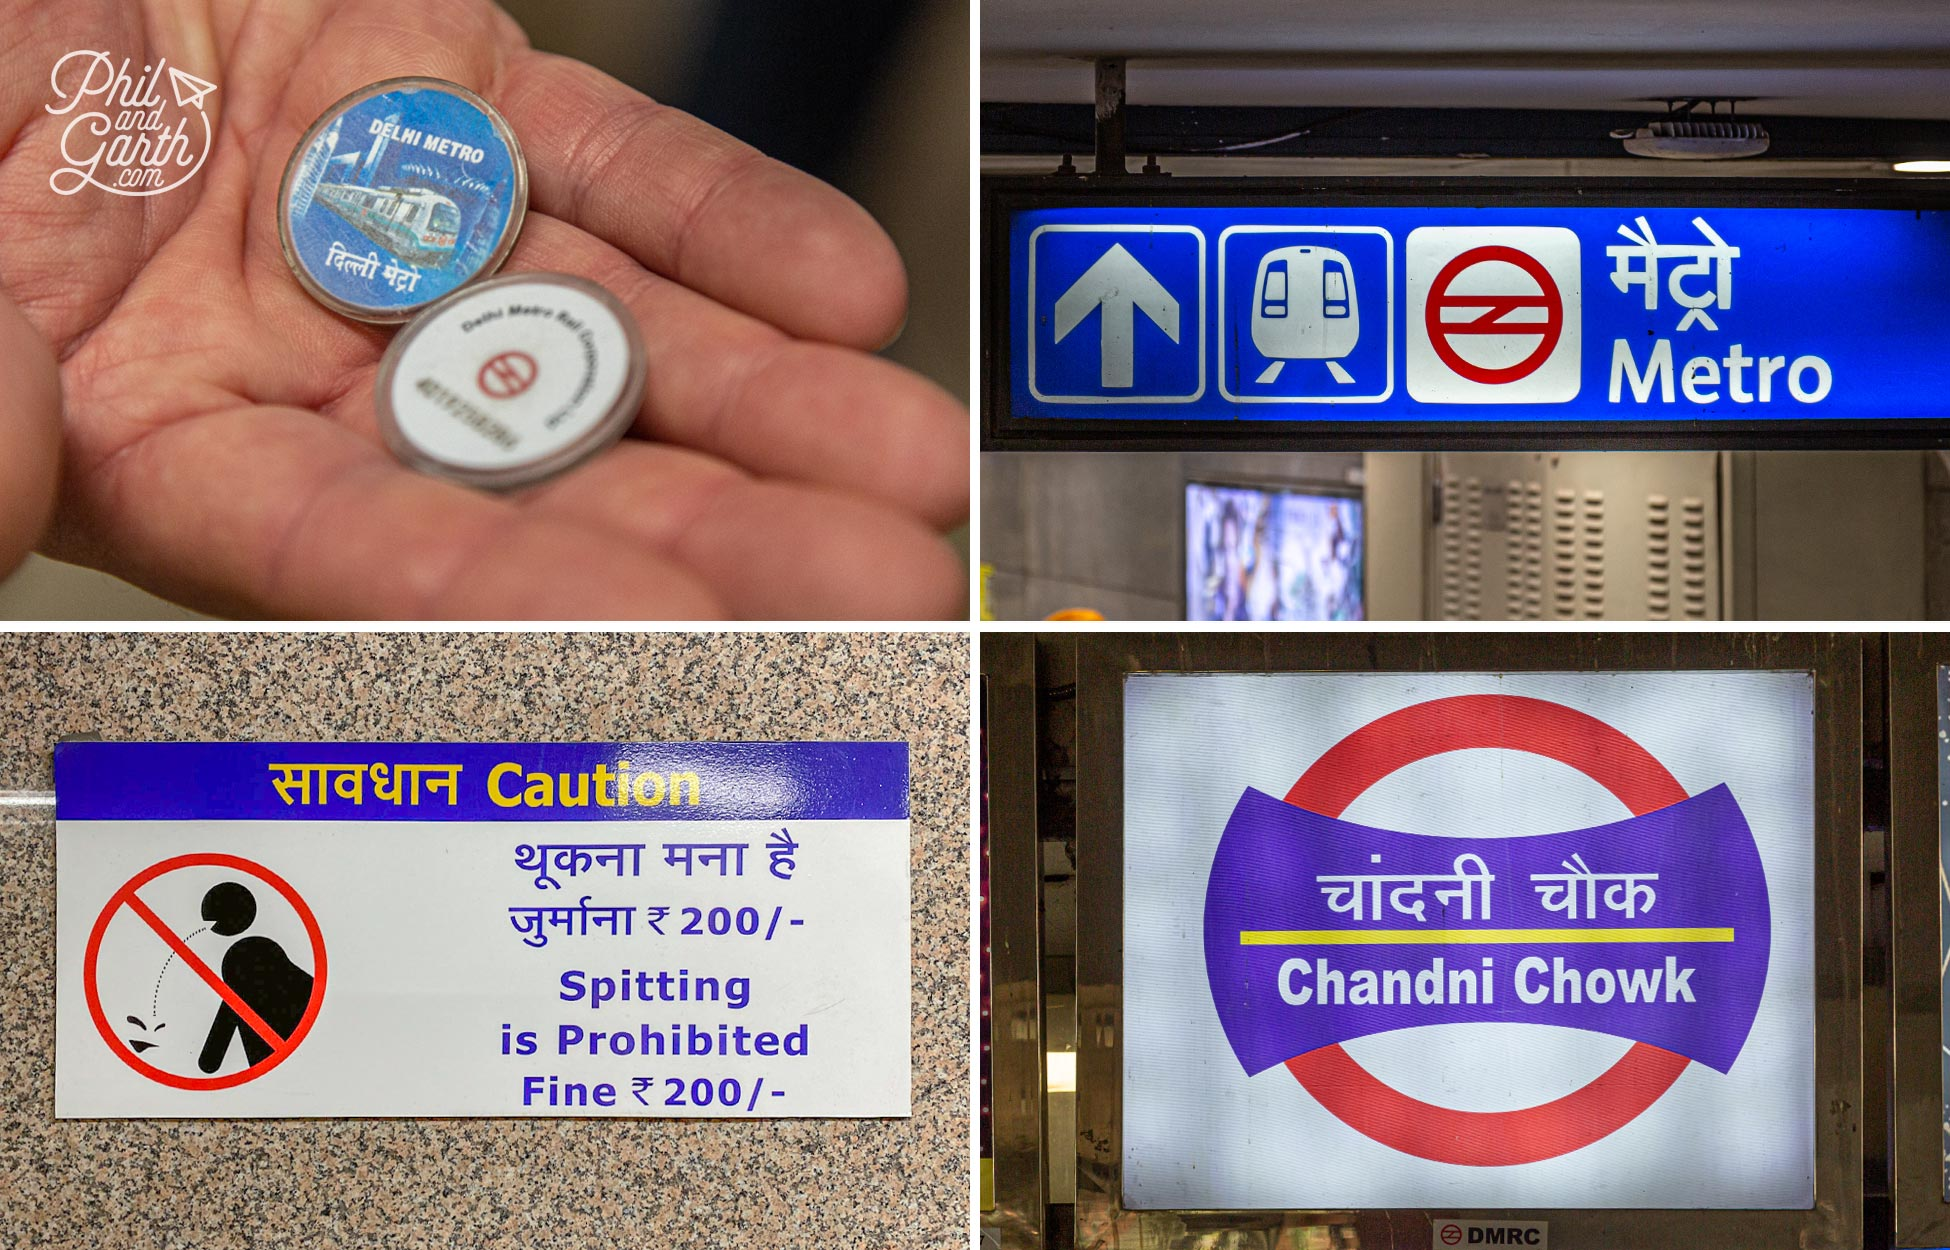 Delhi Metro tokens and signs on the underground